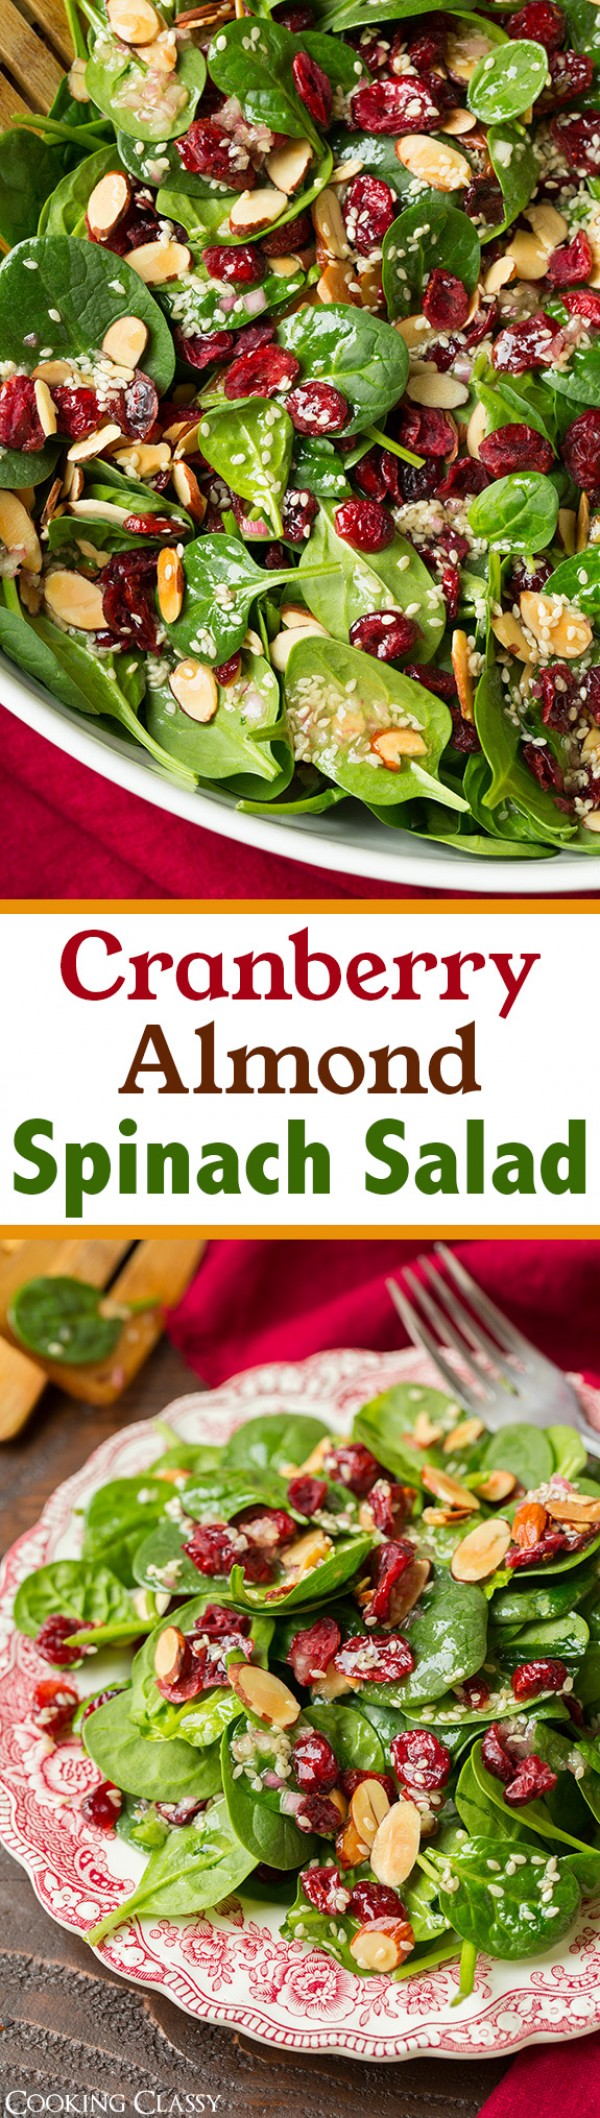 Get the recipe Cranberry Almond Spinach Salad @recipes_to_go